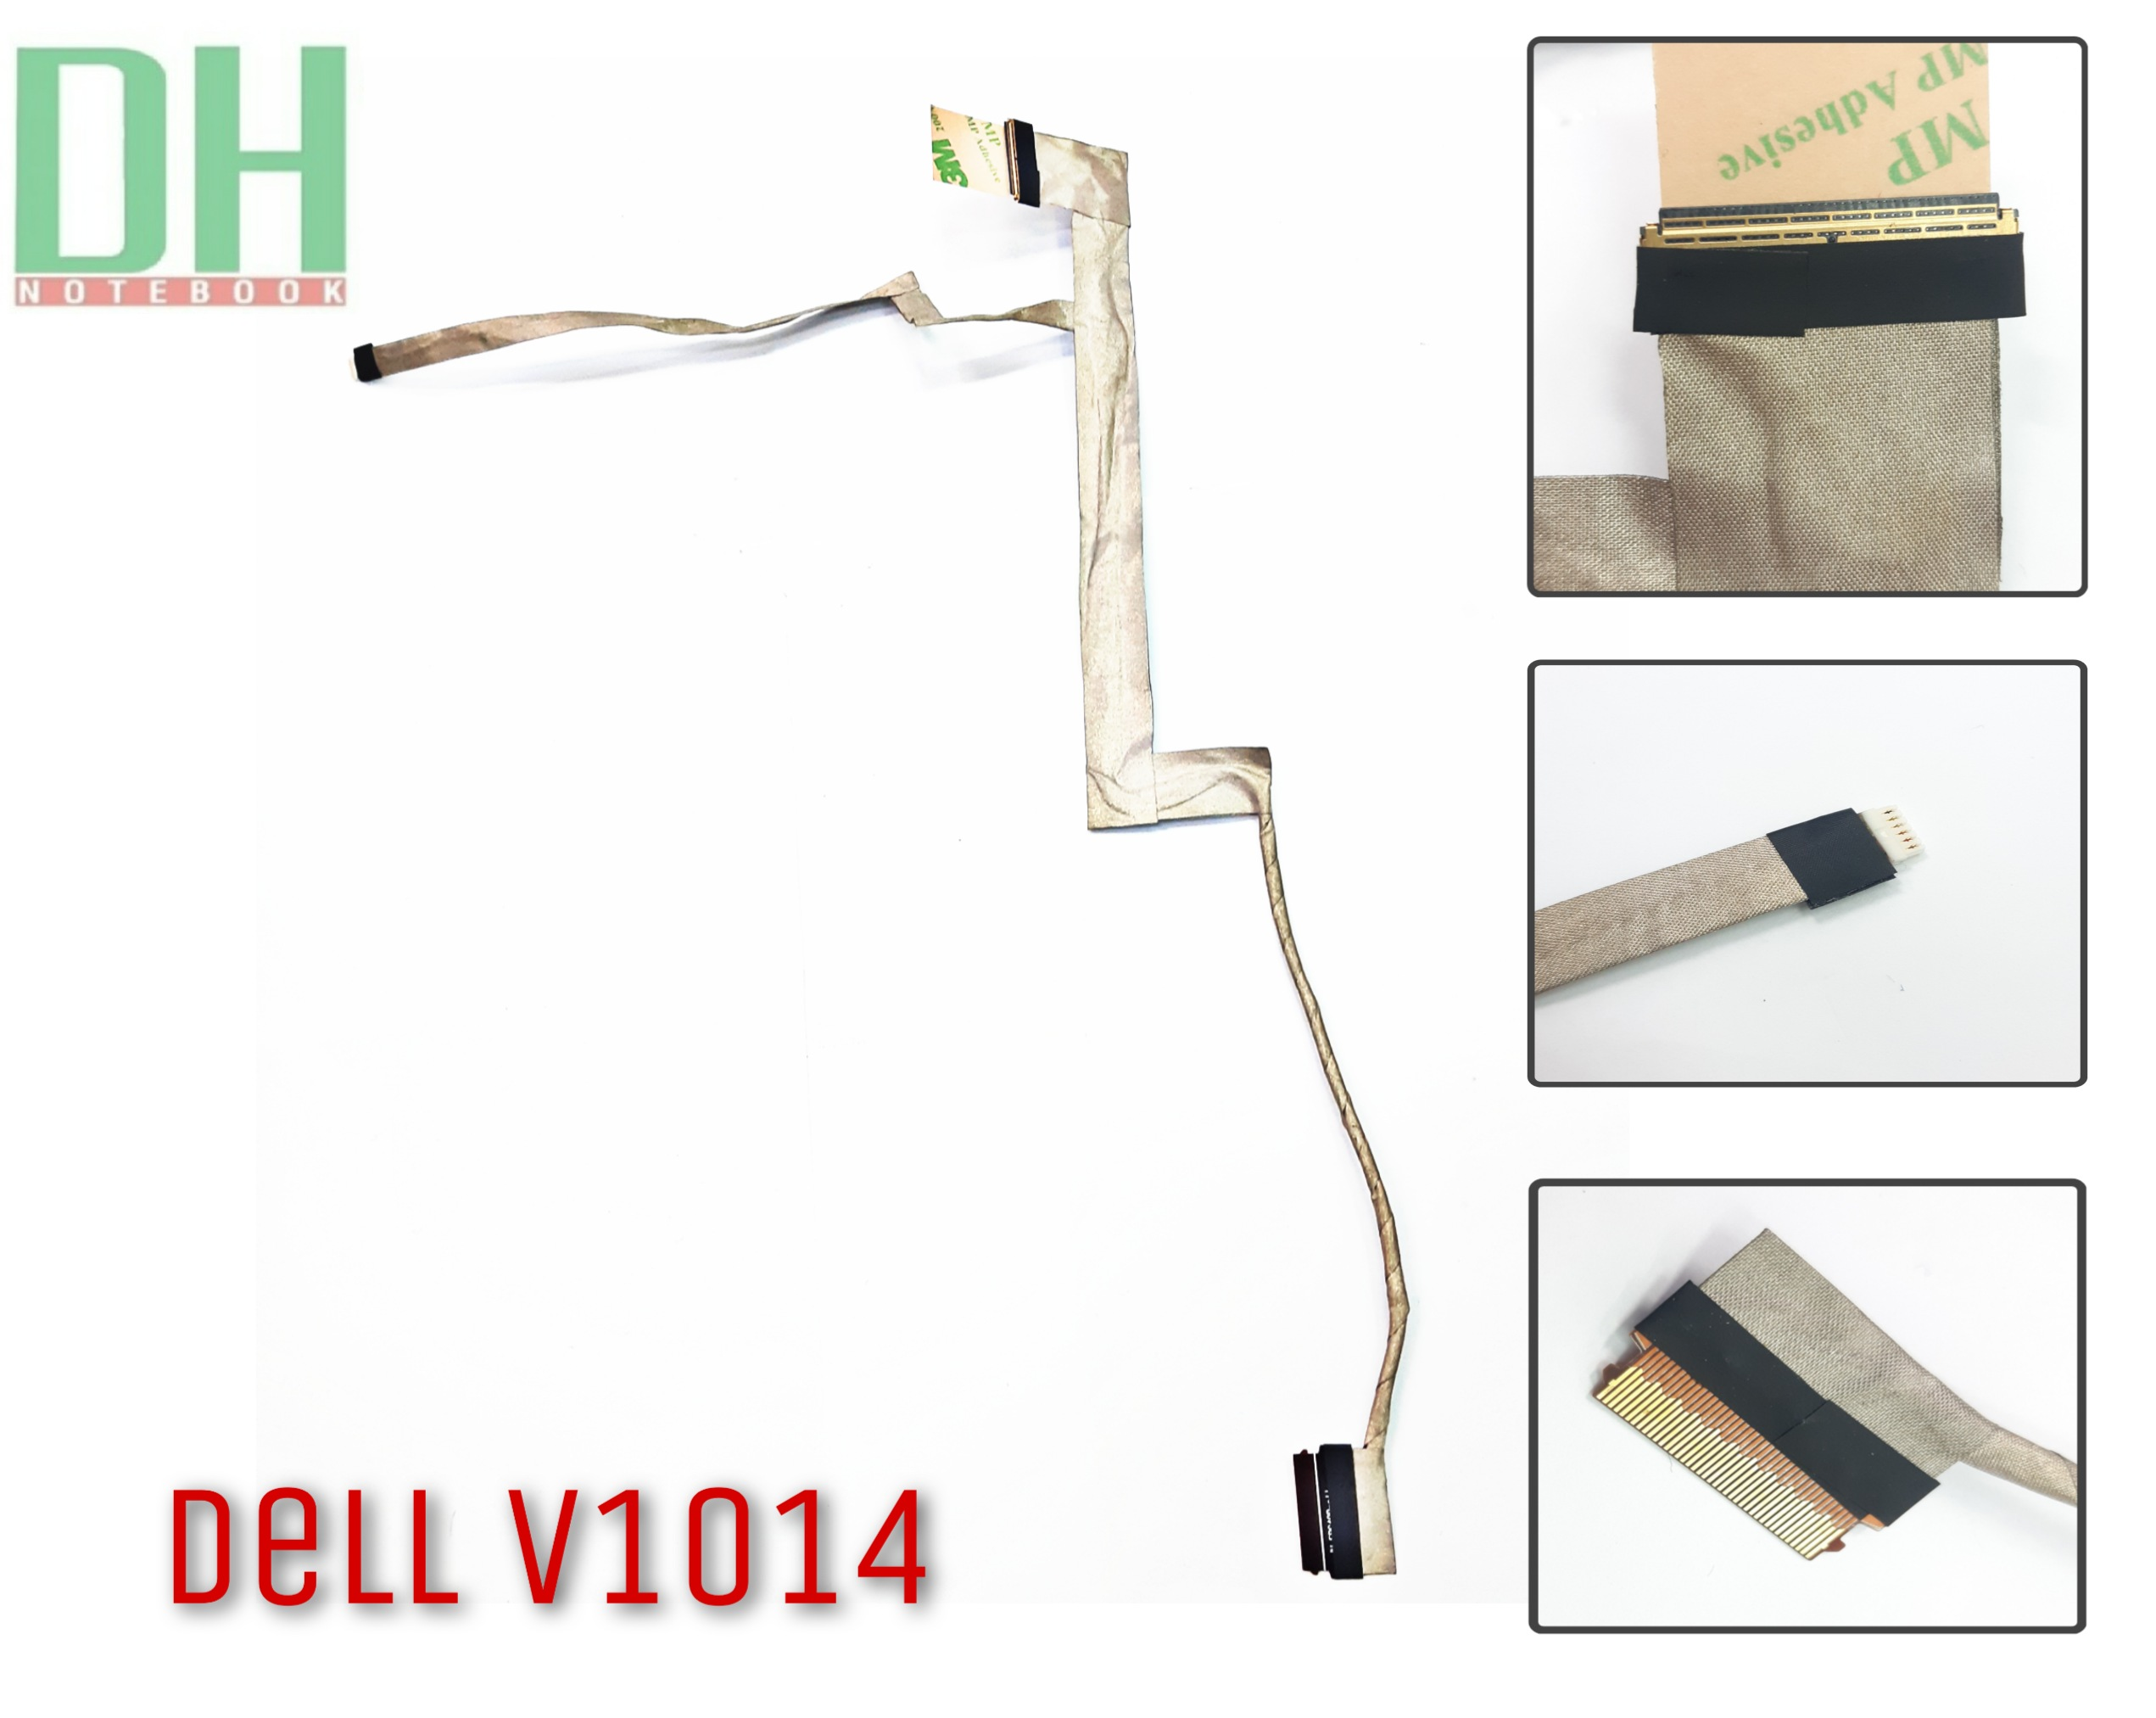 Dell V1014 Video Cable